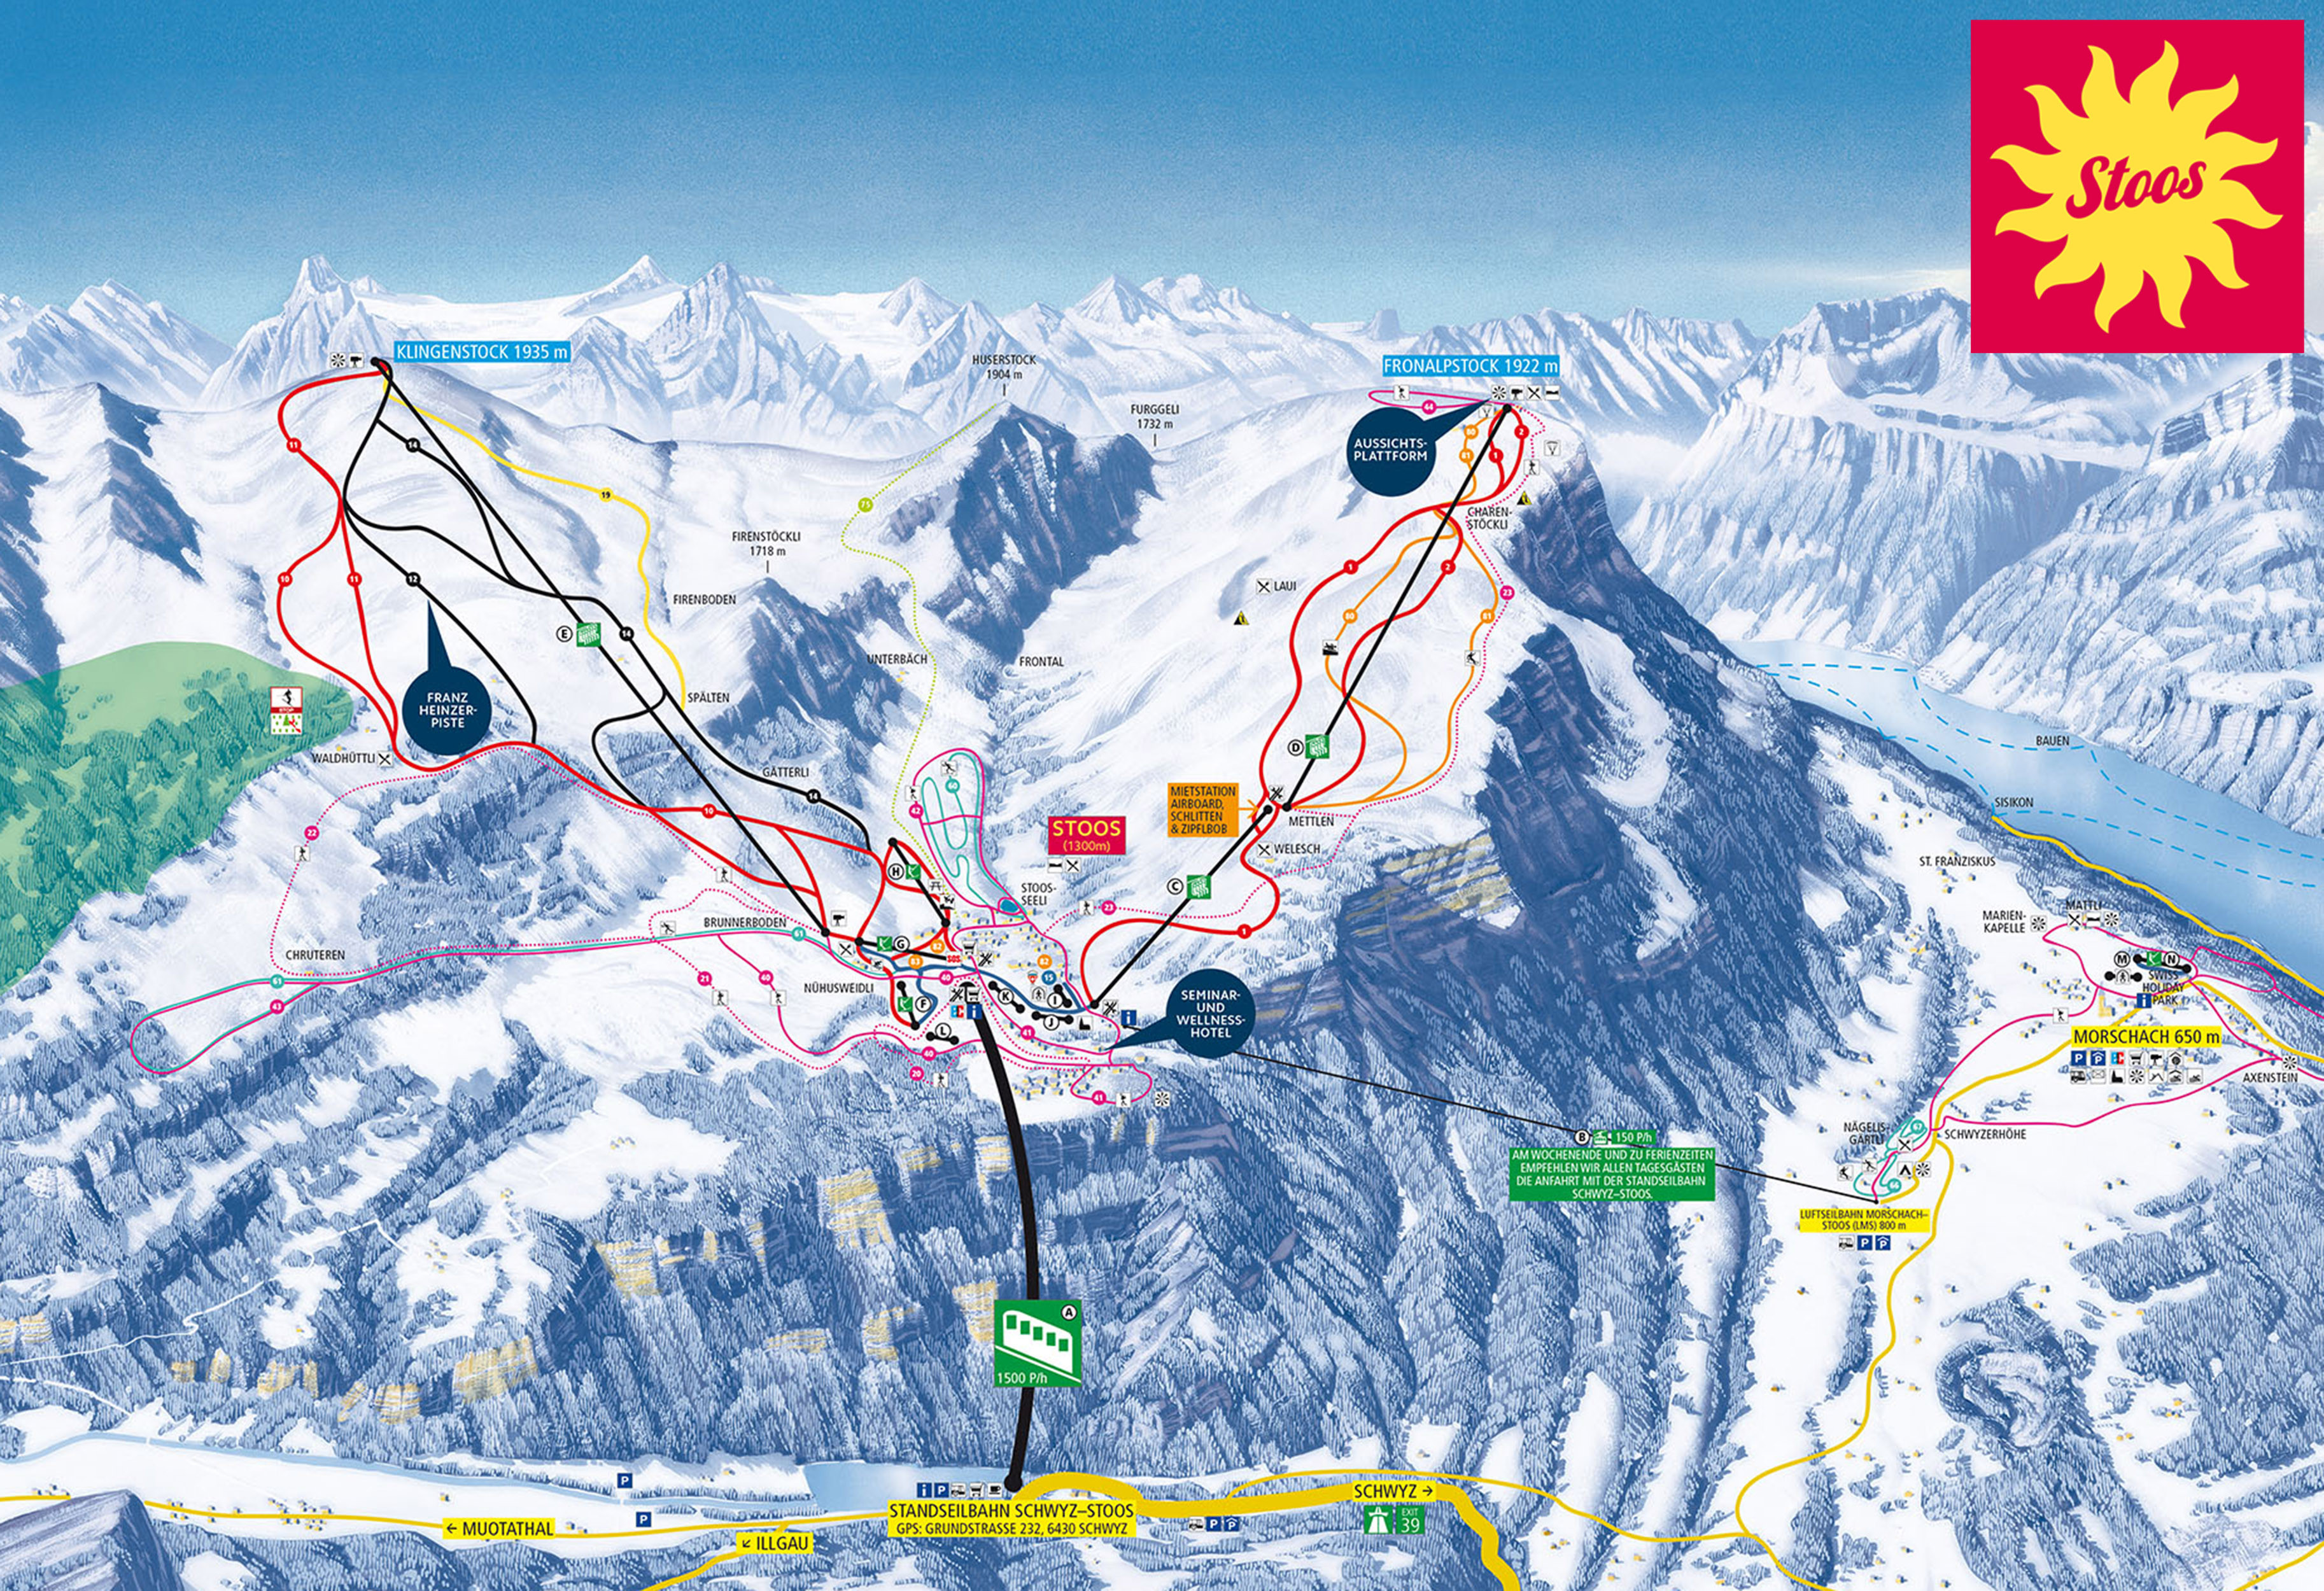 Stoos Piste / Trail Map